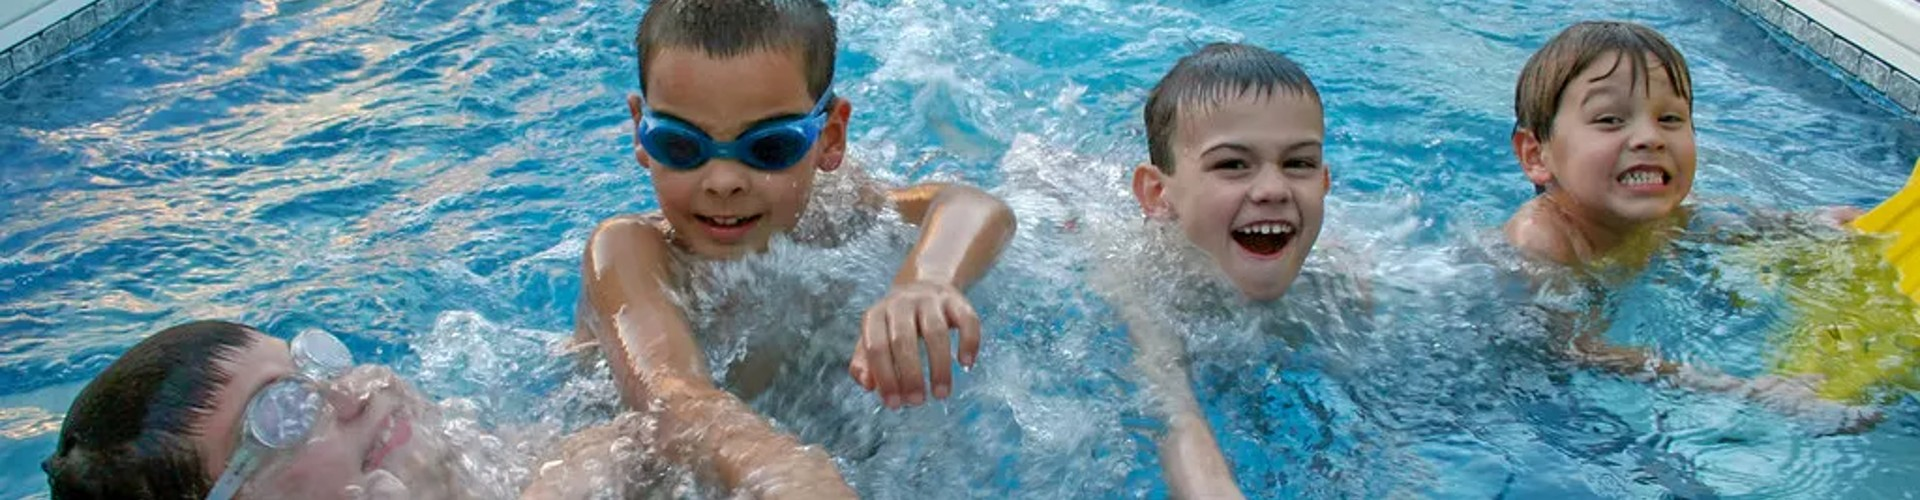 Why Buy a Recreation Pool?